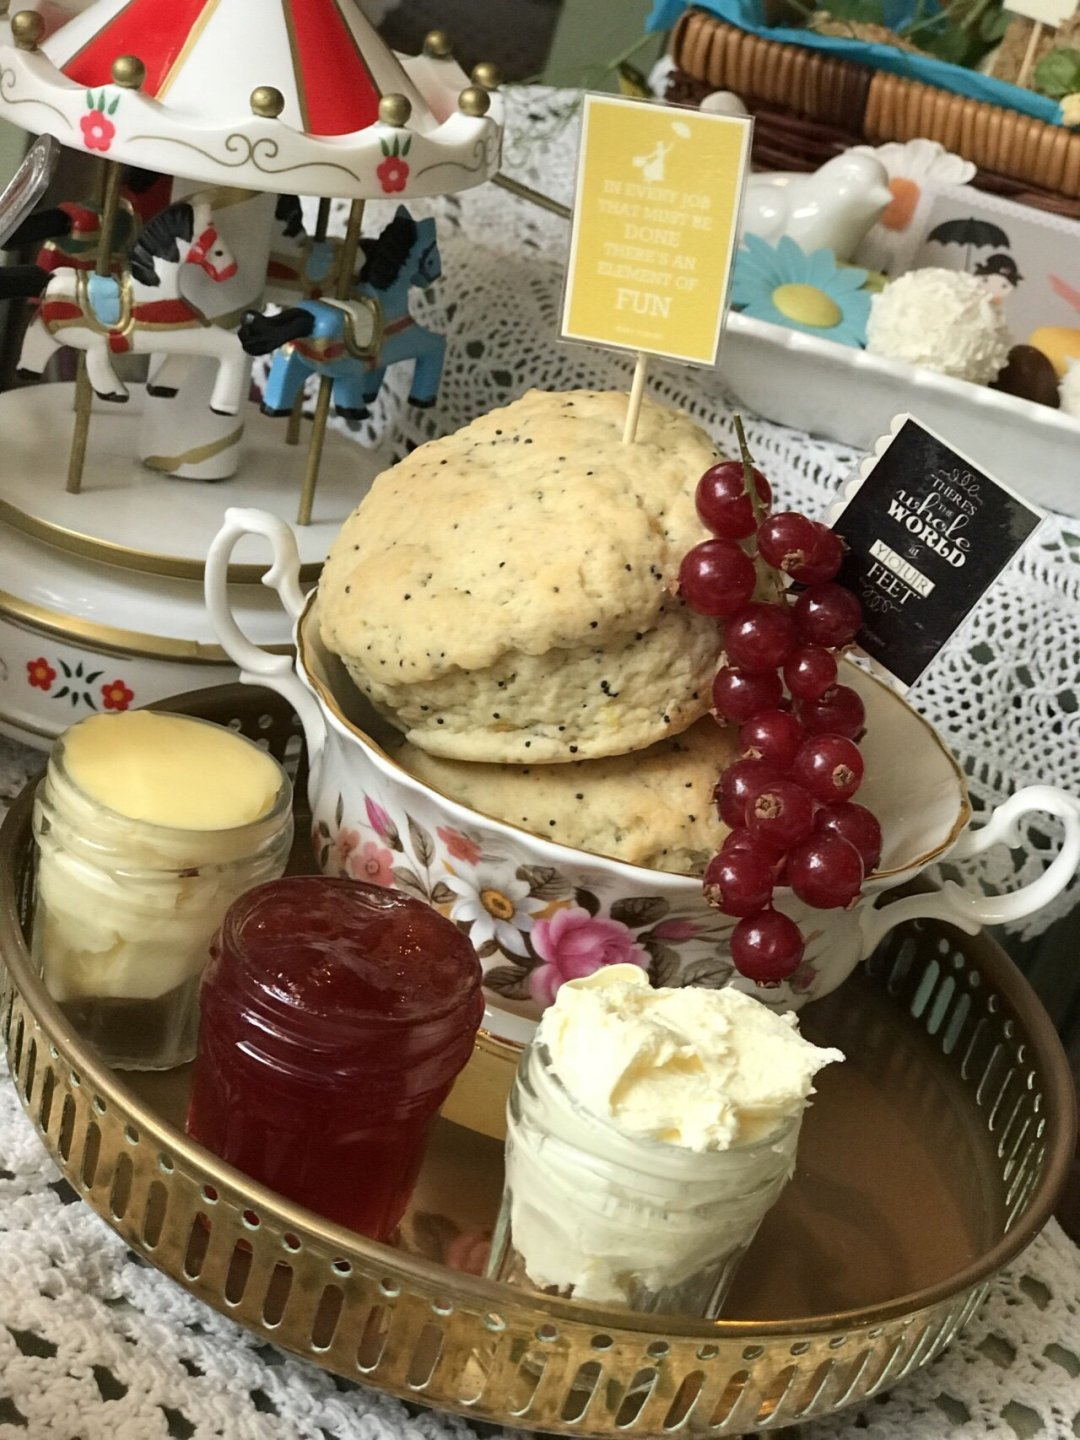 Scones and jam Mary Poppins Themed Afternoon Tea